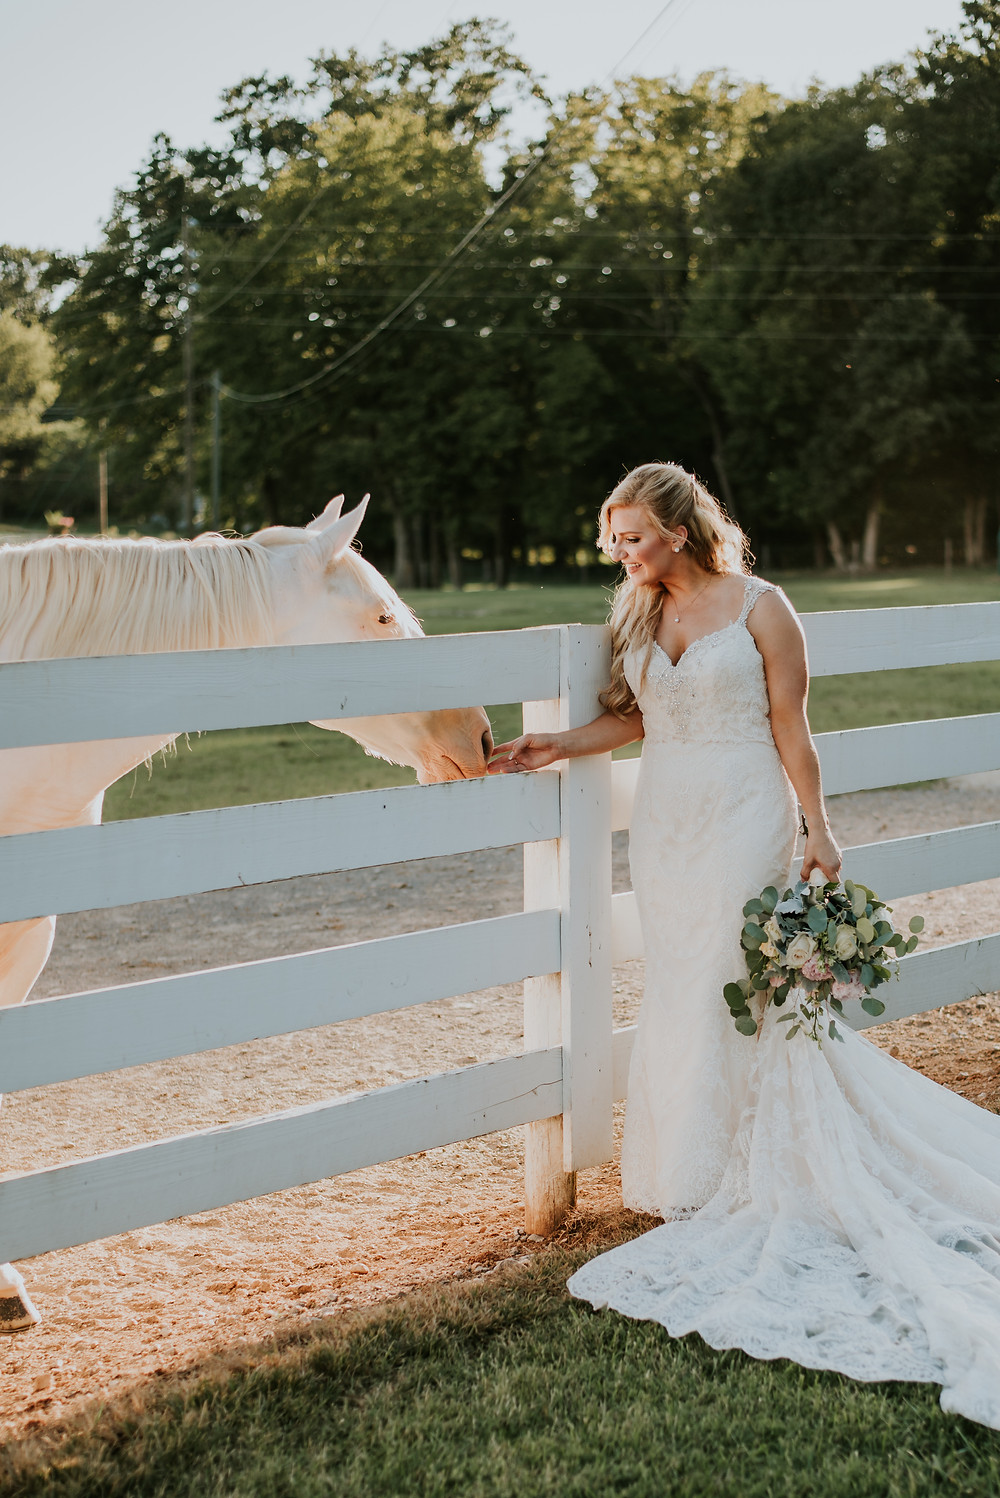 Nashville, TN wedding